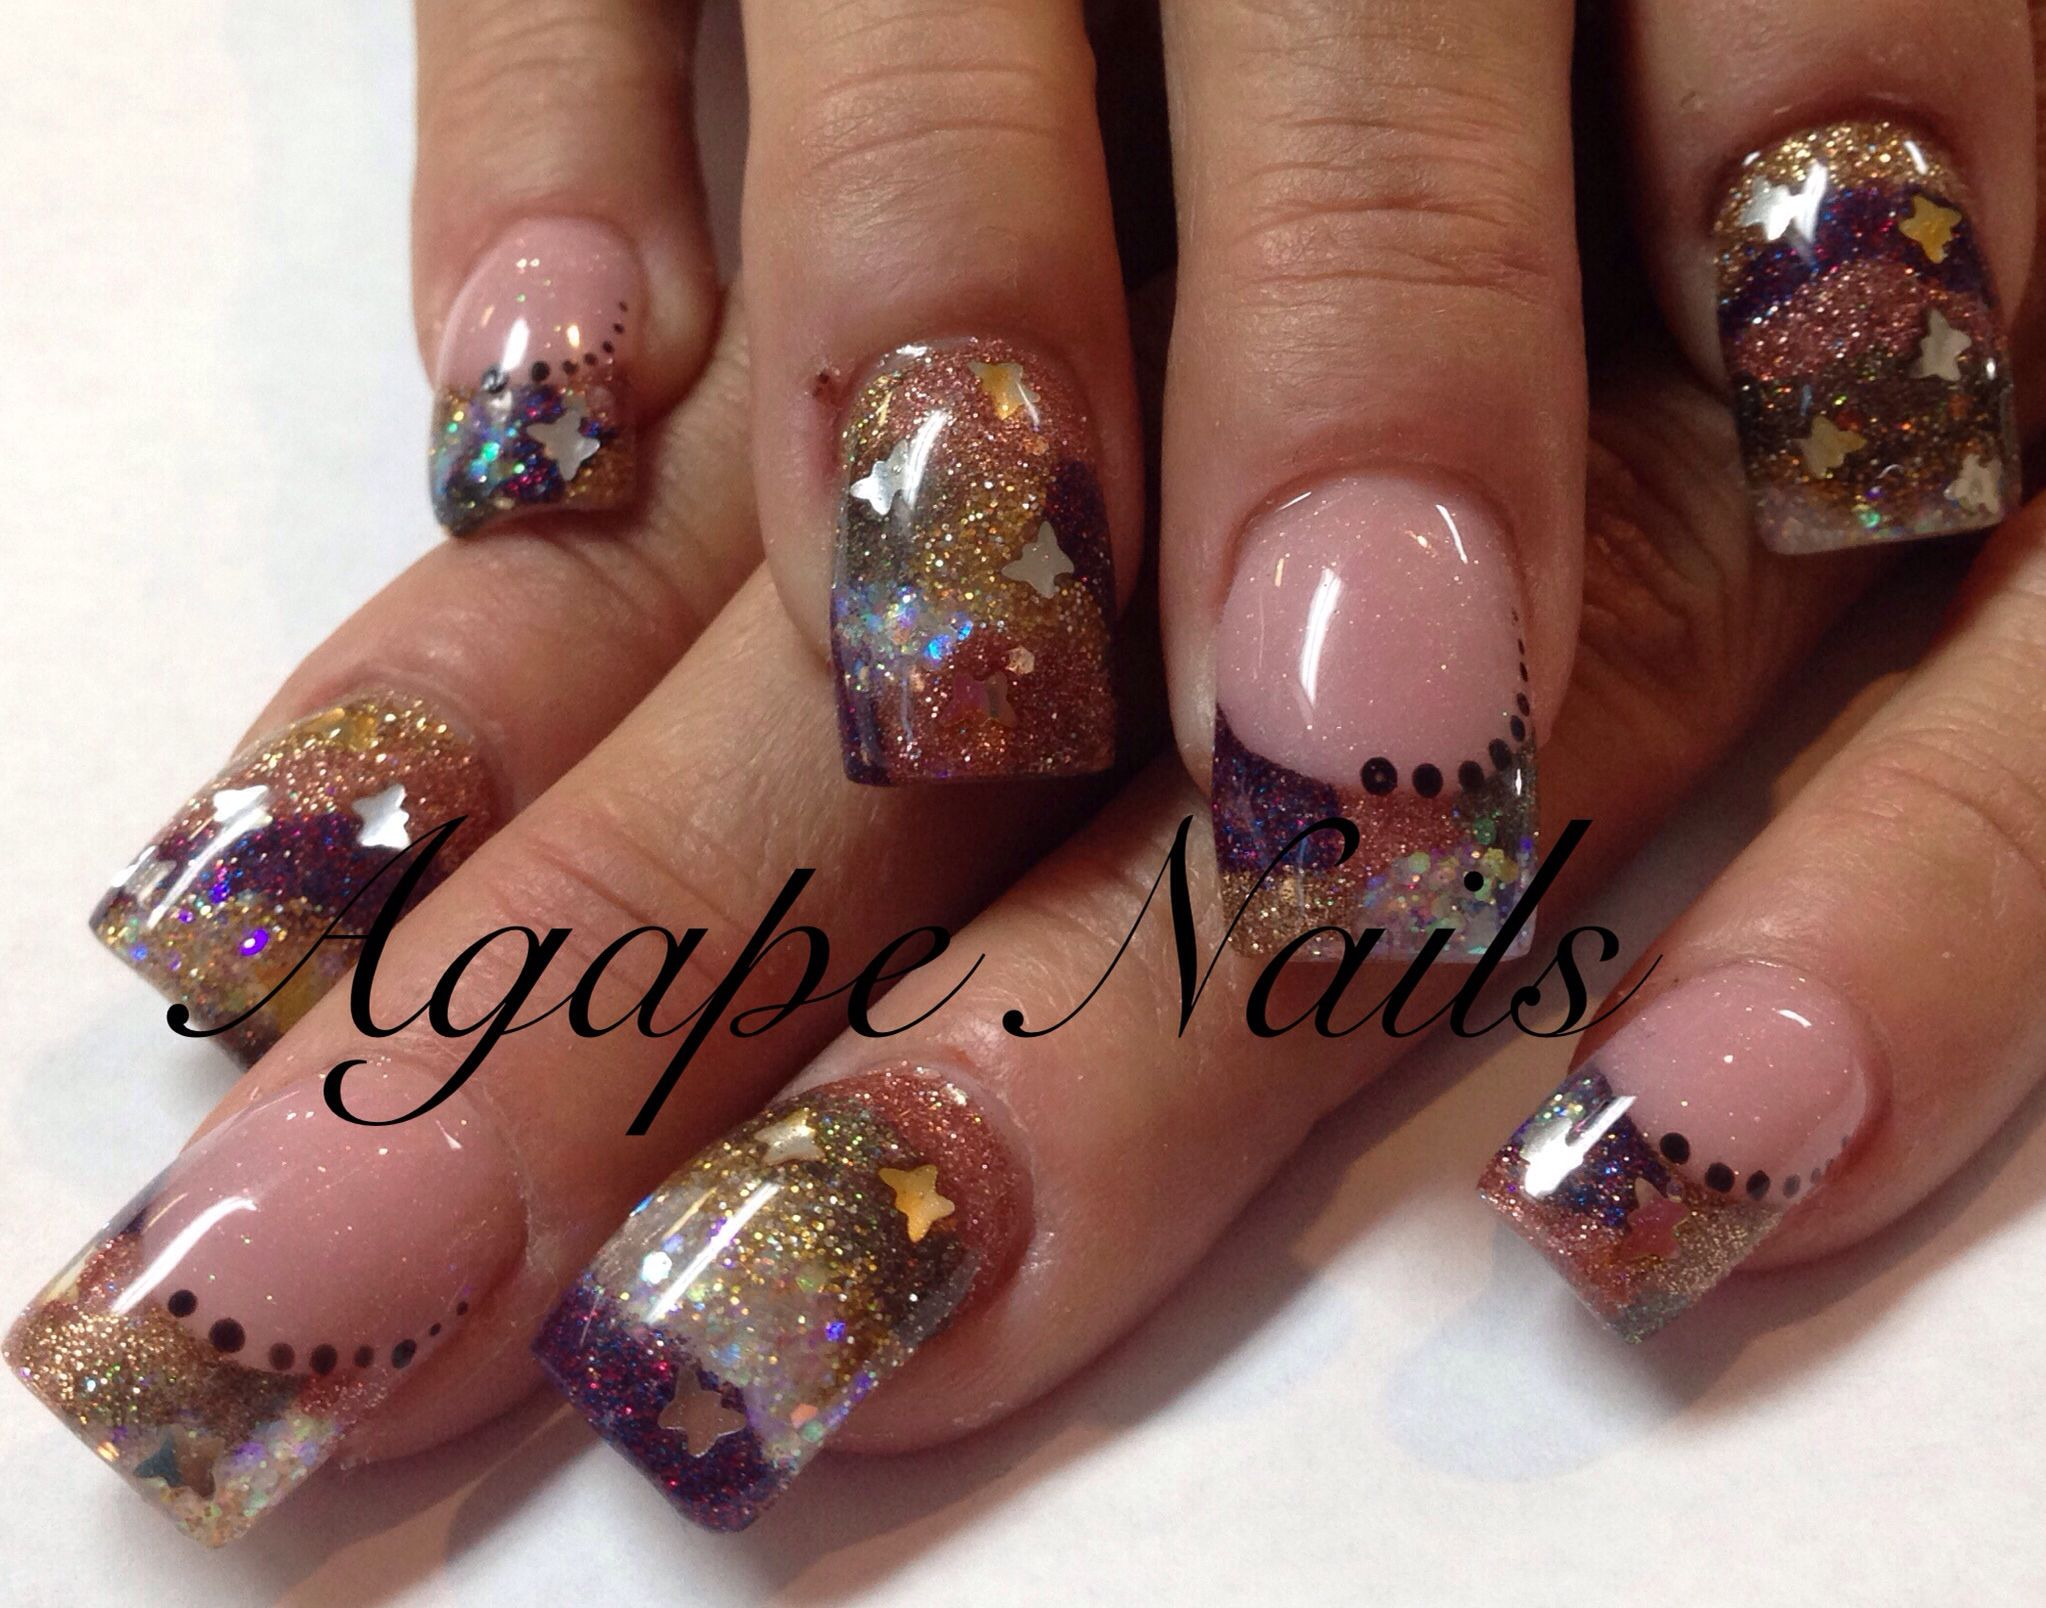 Encapsulated nail art ledufa superb then pham encapsulated the shake into each nail using gel polish pham said she didnt realize her idea of using cannabis in the nail art was popular prinsesfo Choice Image